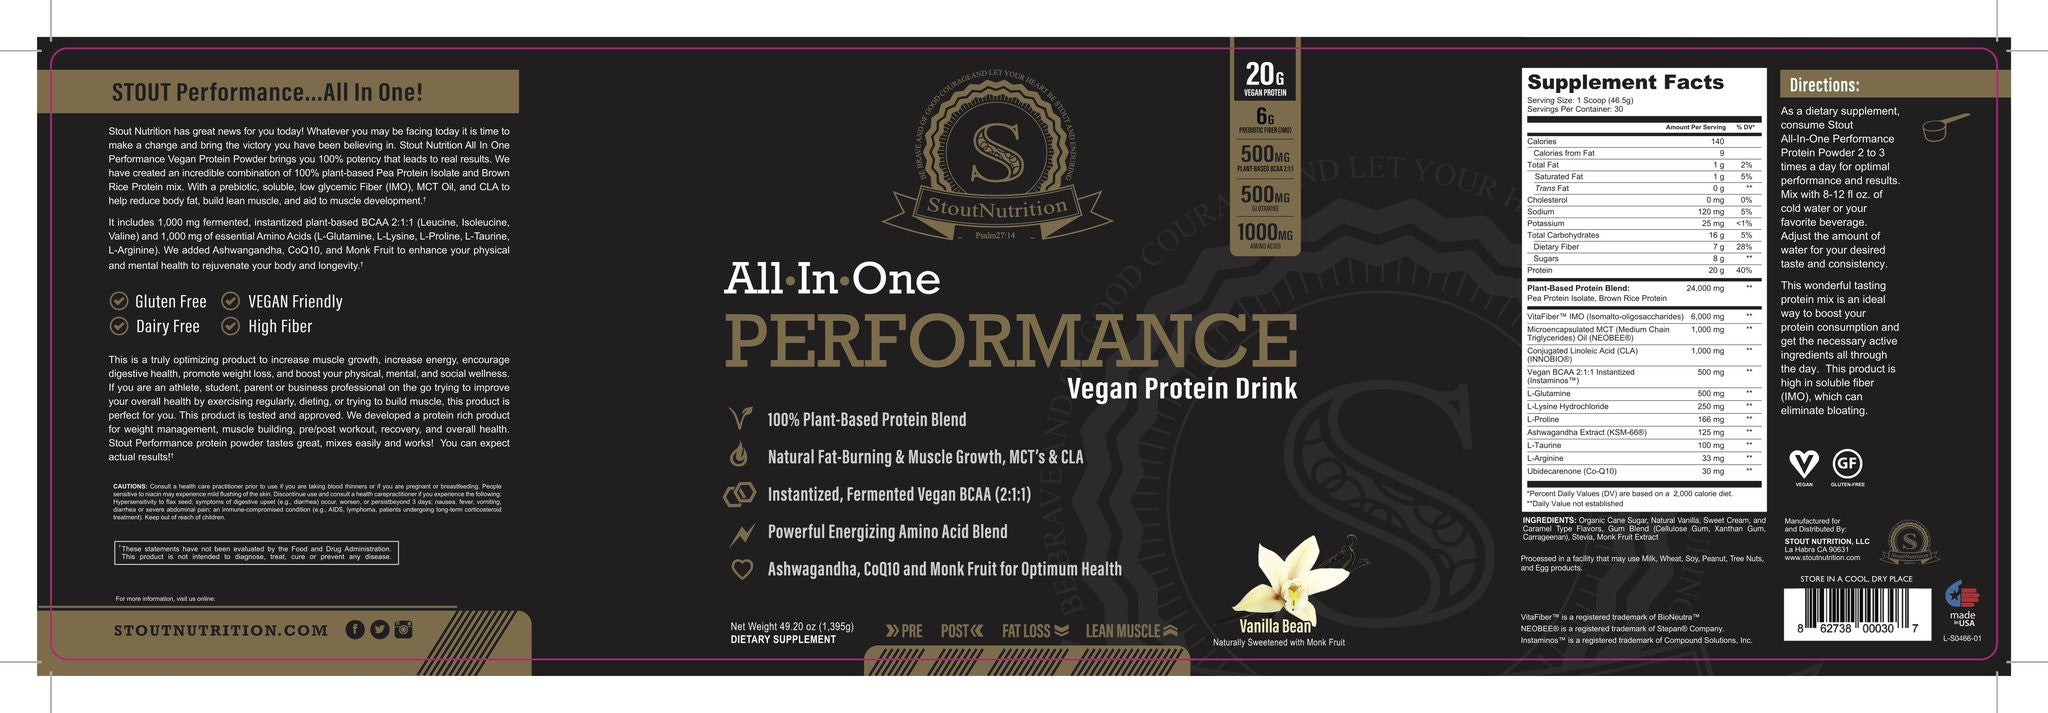 Stout Nutrition all in one plant protein nutrition facts label